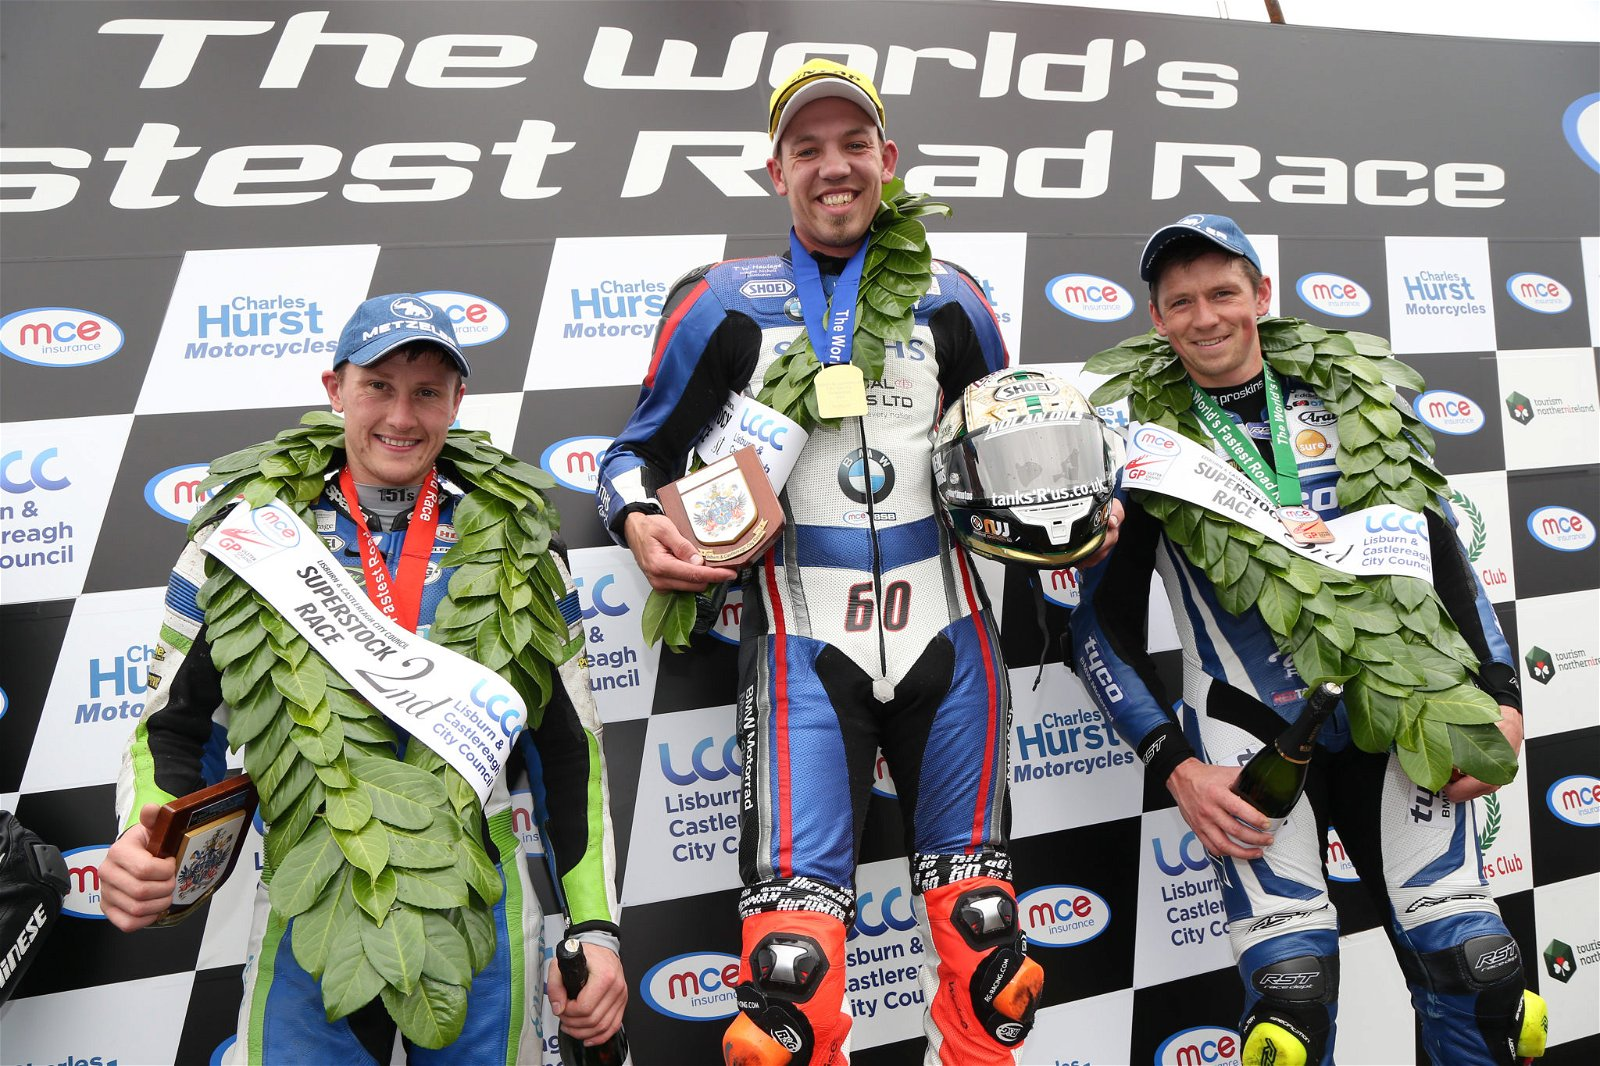 Hickman takes the Ulster GP Superstock title, image credit Pacemaker Press InternationalHickman takes the Ulster GP Superstock title, image credit Pacemaker Press International